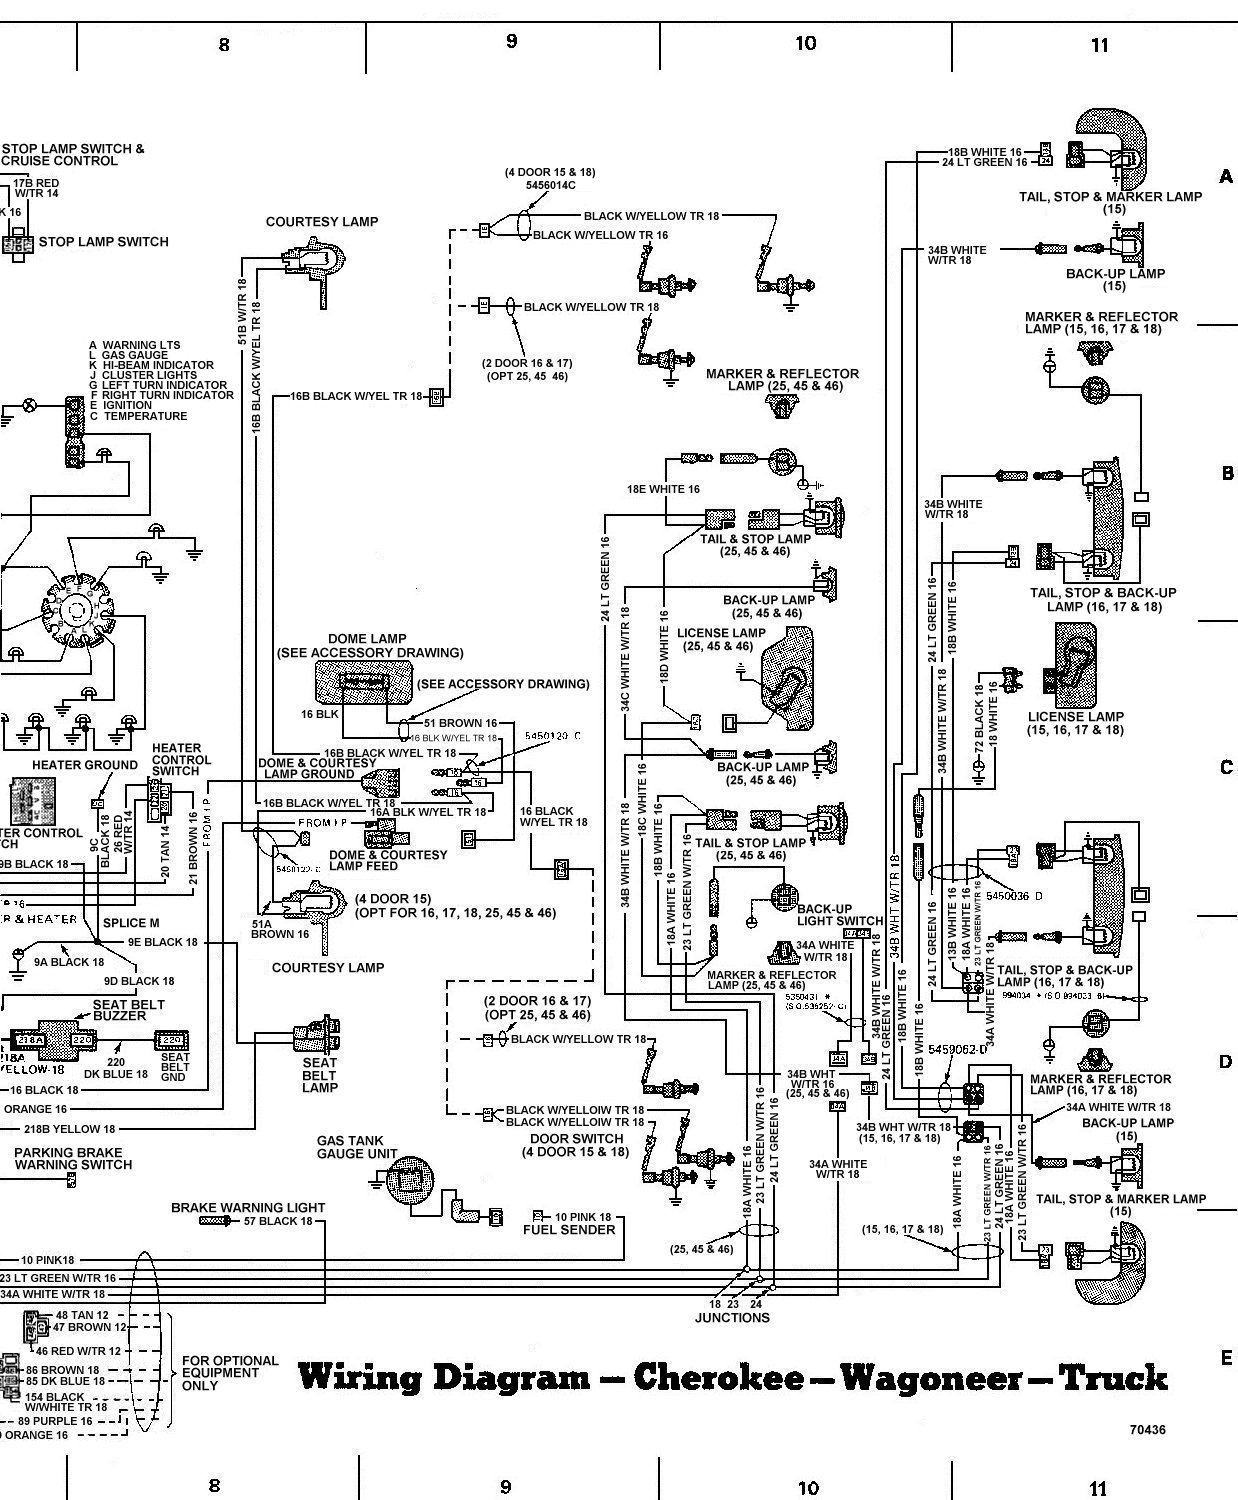 jeep j10 wiring schematics wiring diagrams u2022 rh seniorlivinguniversity  co 1969 Jeep CJ5 Wiring-Diagram